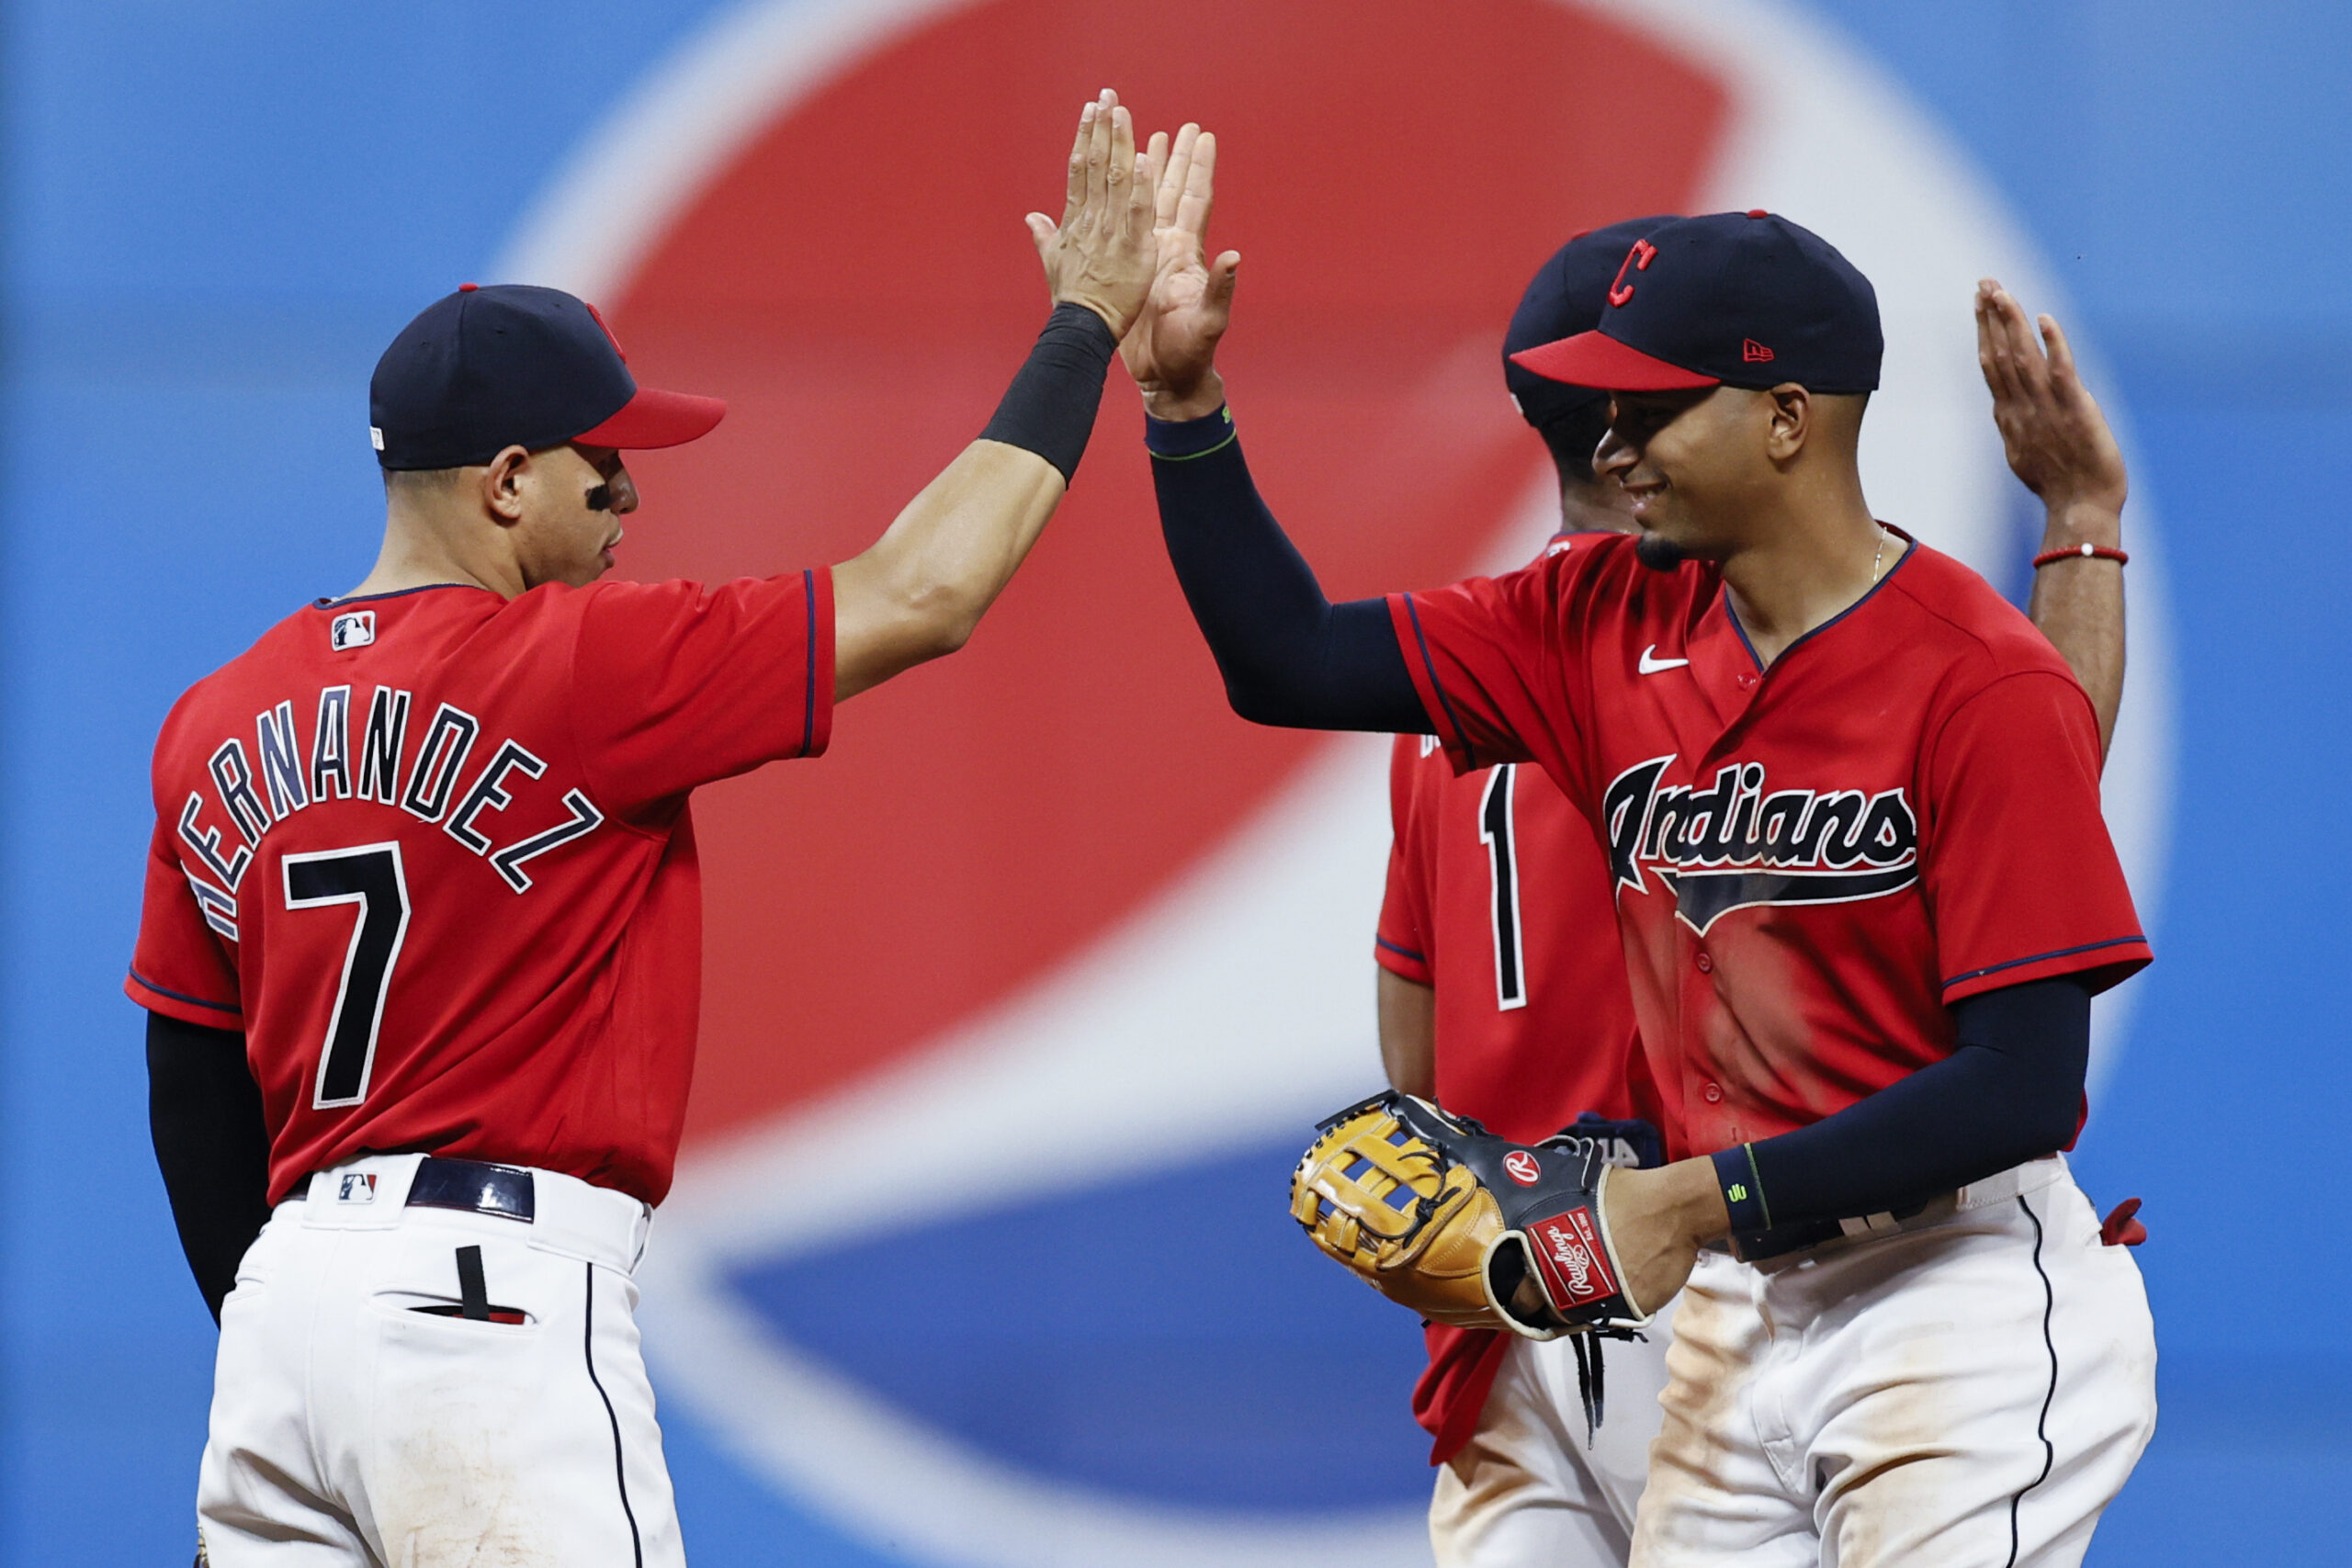 Cesar Hernandez #7 and Oscar Mercado #35 of the Cleveland Indians celebrate a 14-6 victory over the Kansas City Royals at Progressive Field on July 10, 2021 in Cleveland, Ohio.